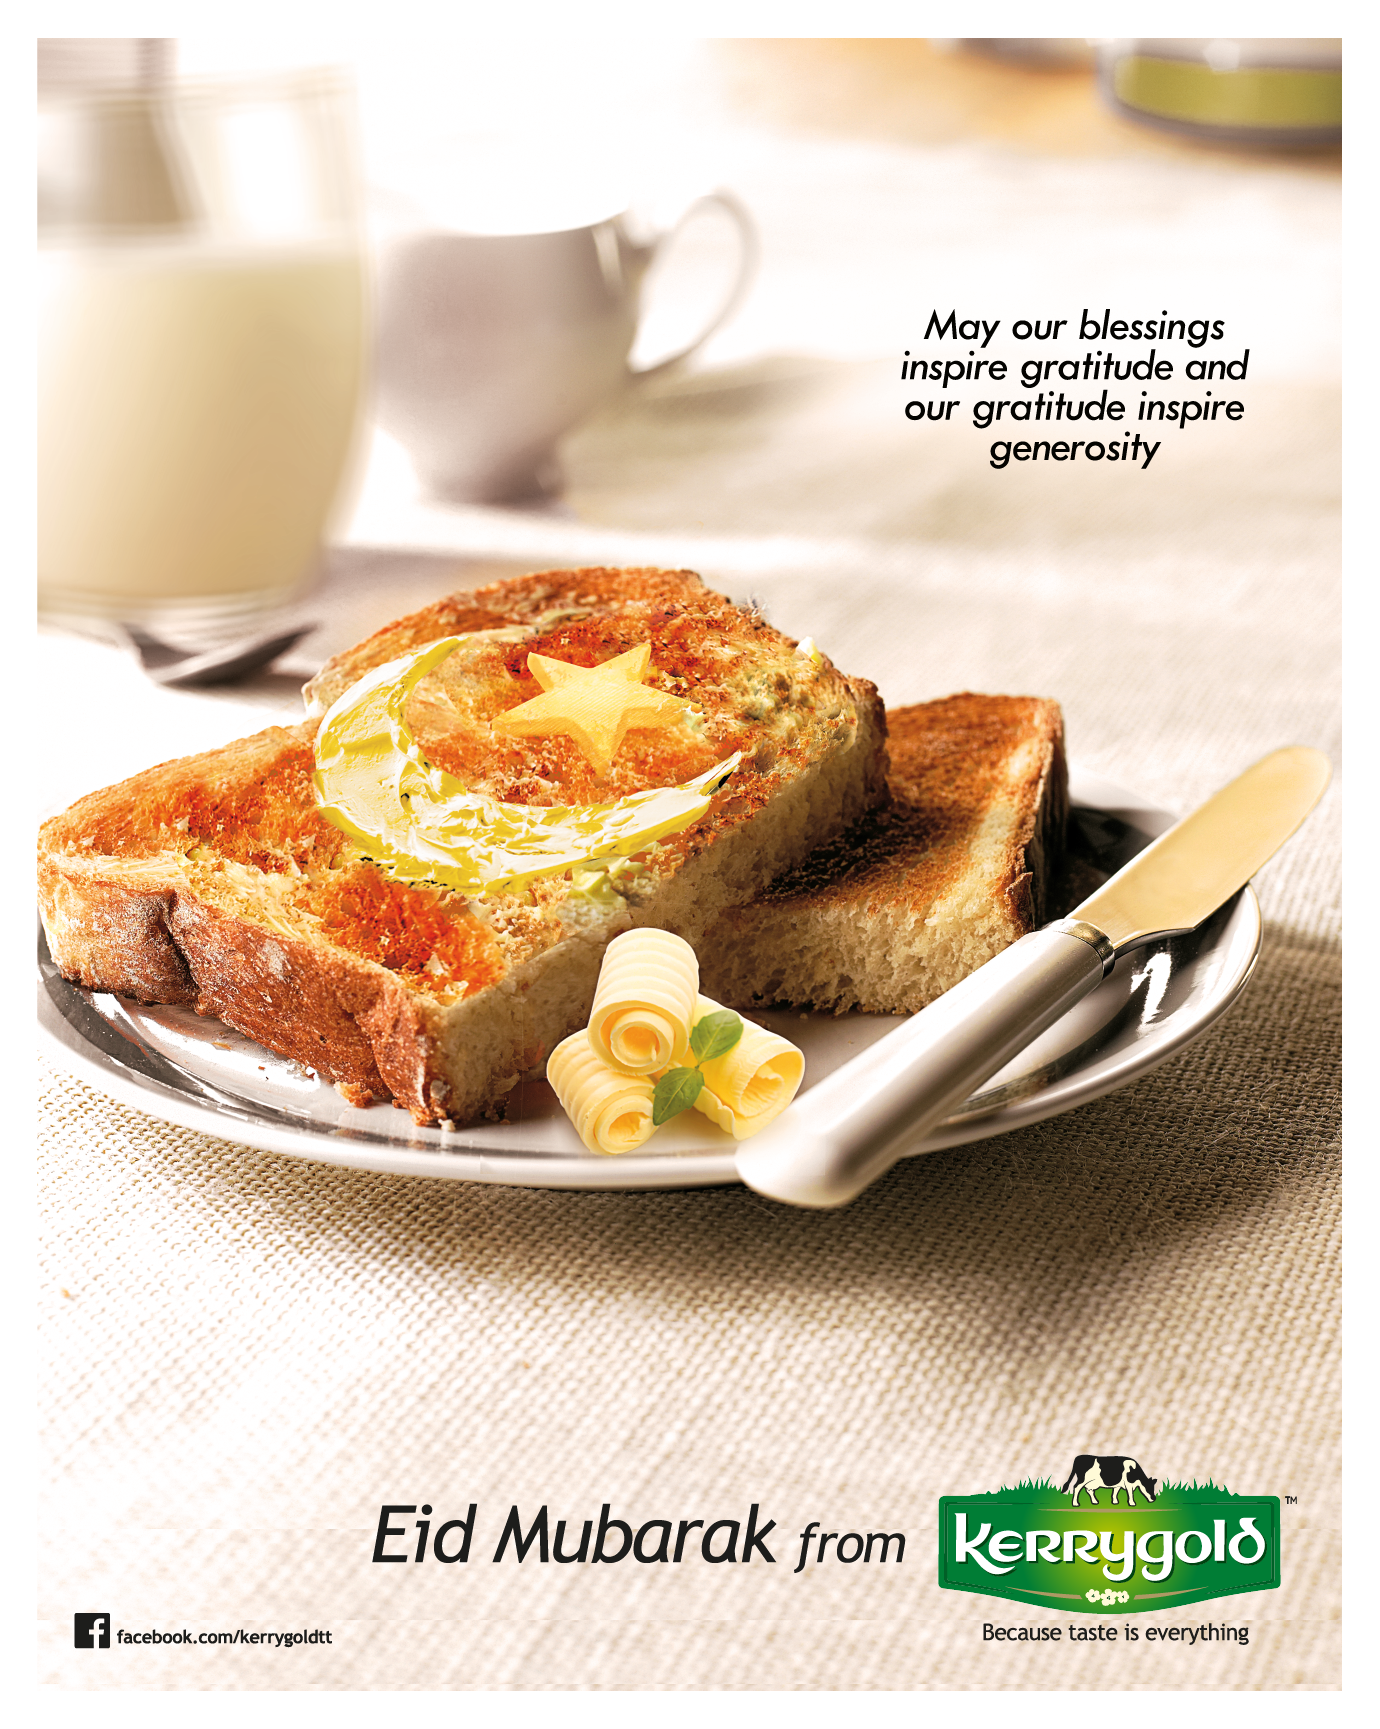 Kerrygold EID Greetings – 2016 ADDY Award Winner